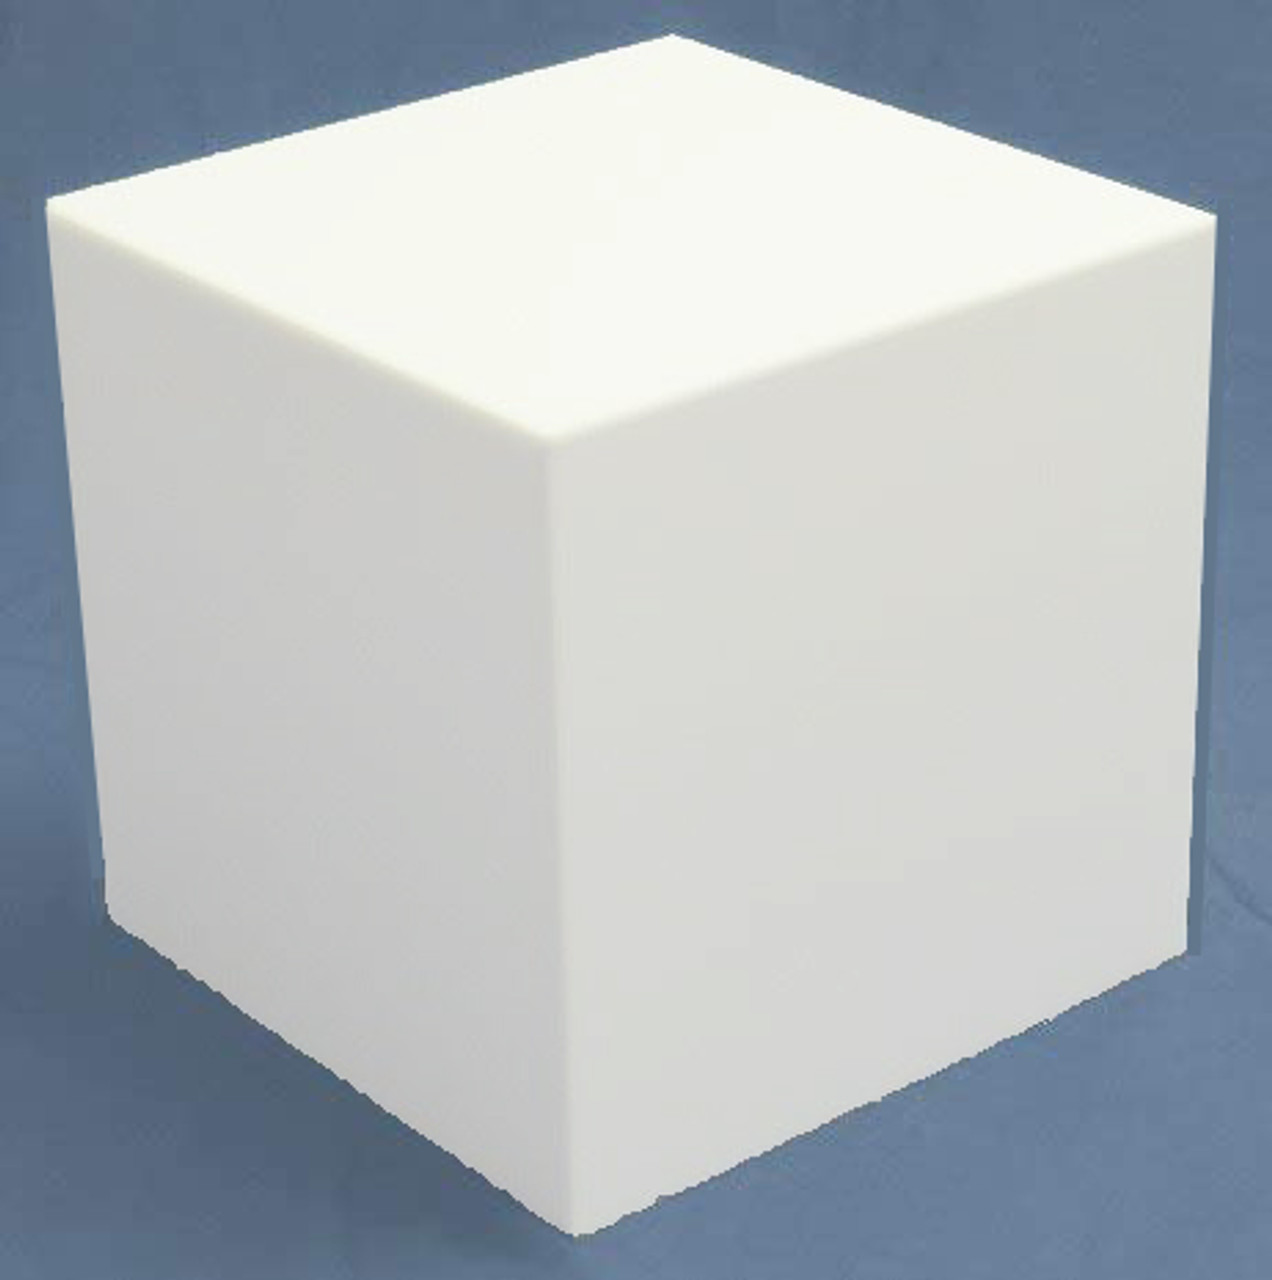 White Large Square Acrylic Display Cube, 18 Inch